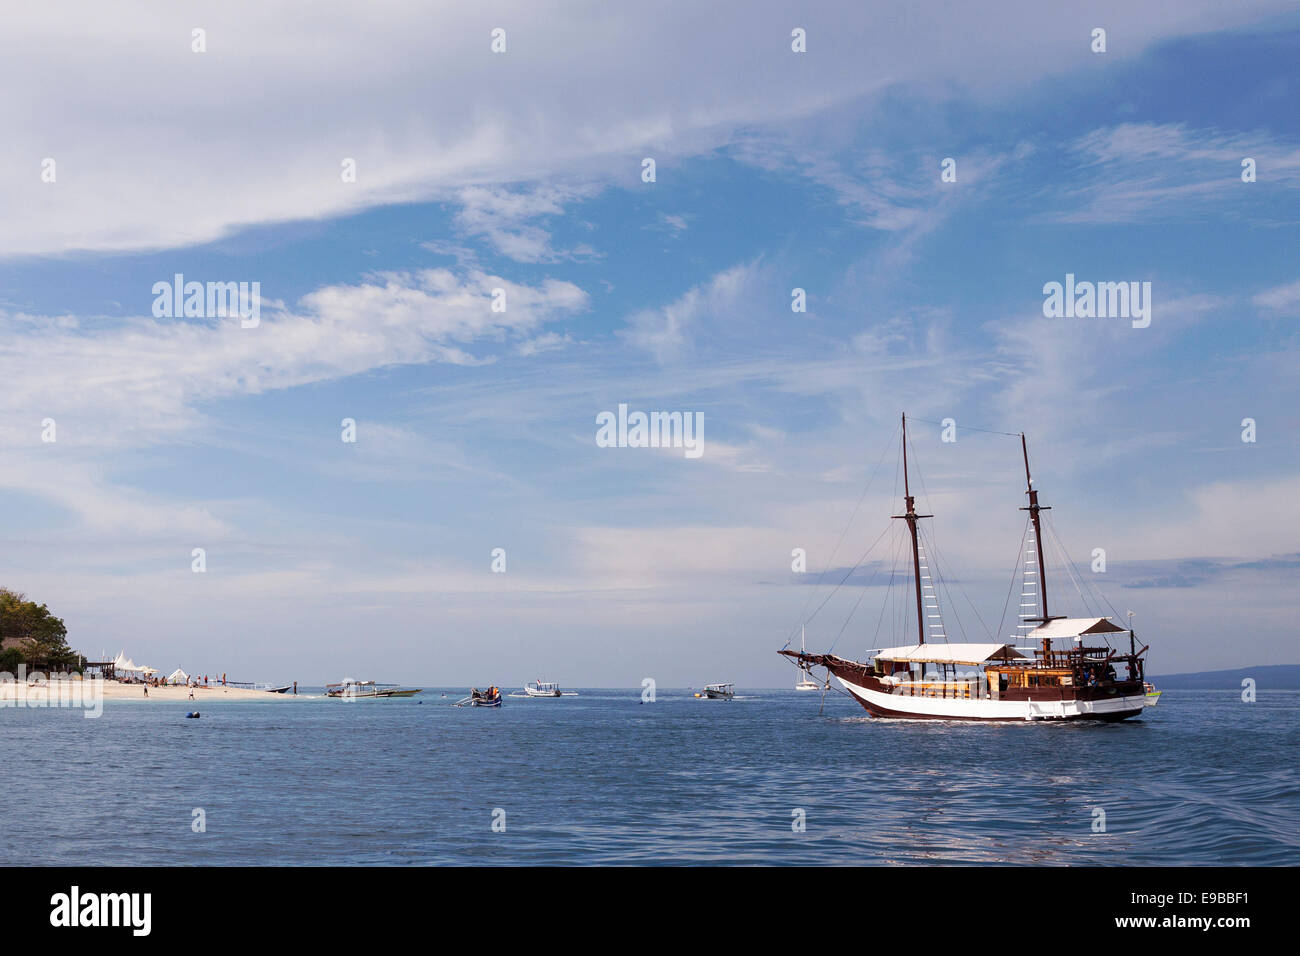 [Sailing boat], 'Gili Air', 'Gili Islands', Lombok, Indonesia - Stock Image